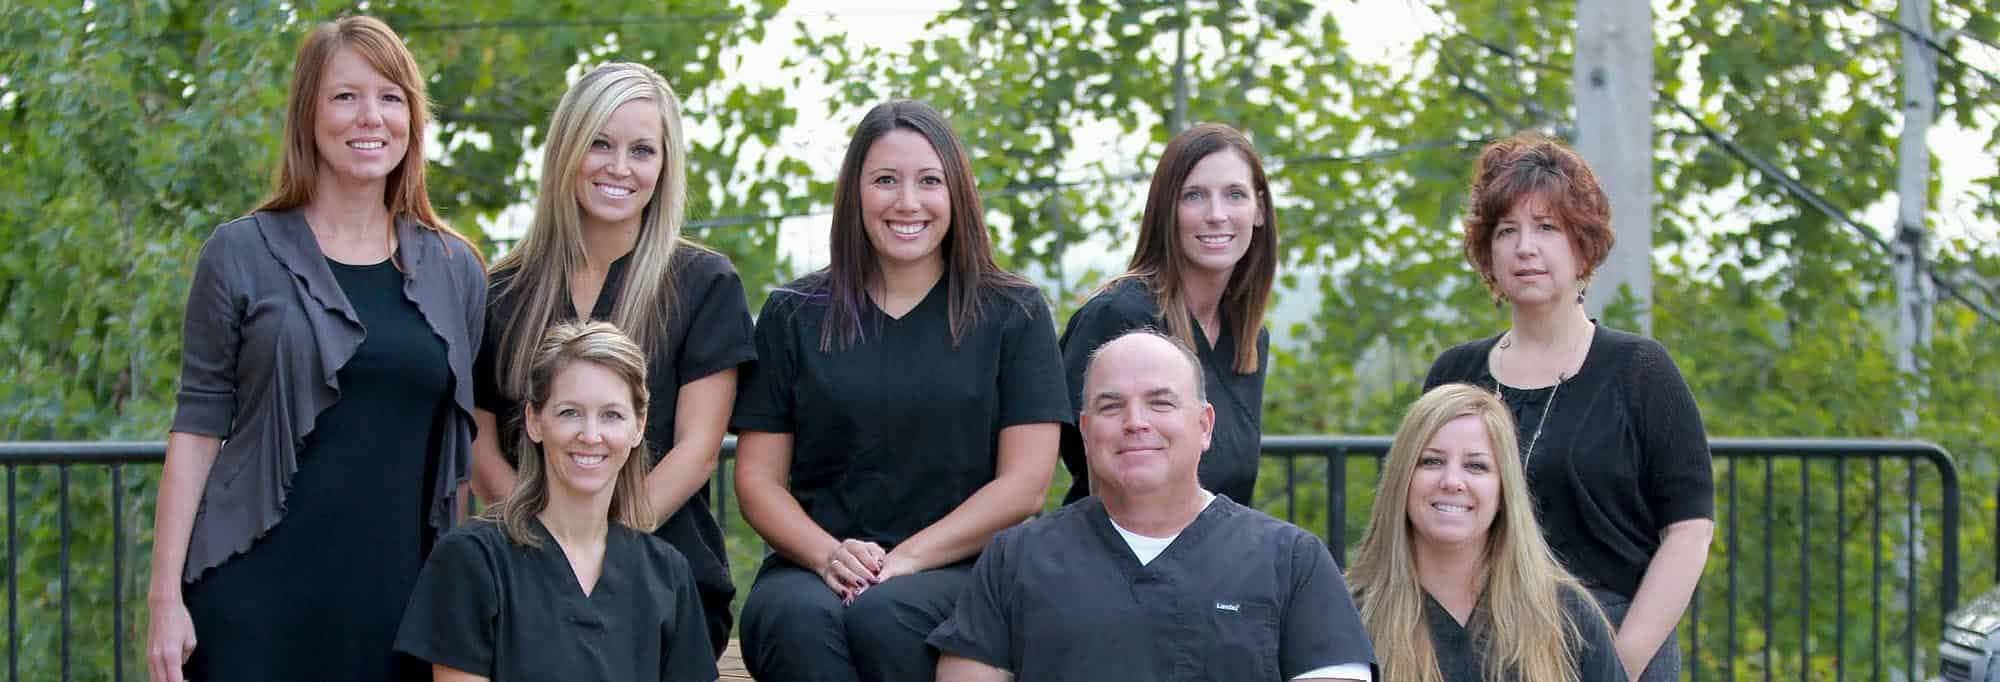 Friendly & knowledgeable staff at Always A Smile Dental